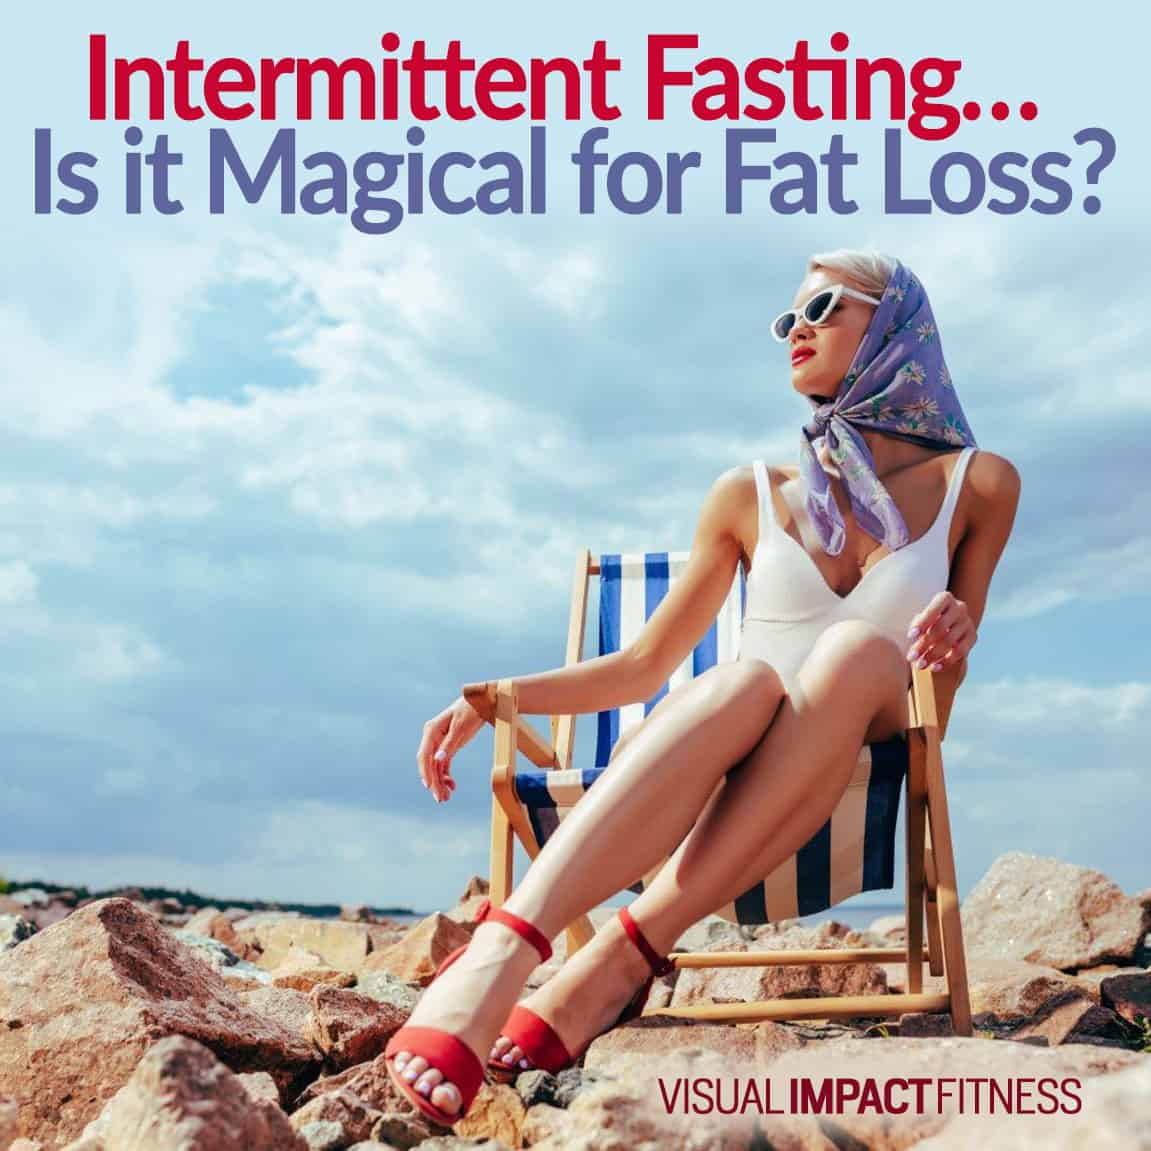 Intermittent Fasting... Is it Magical for Fat Loss?